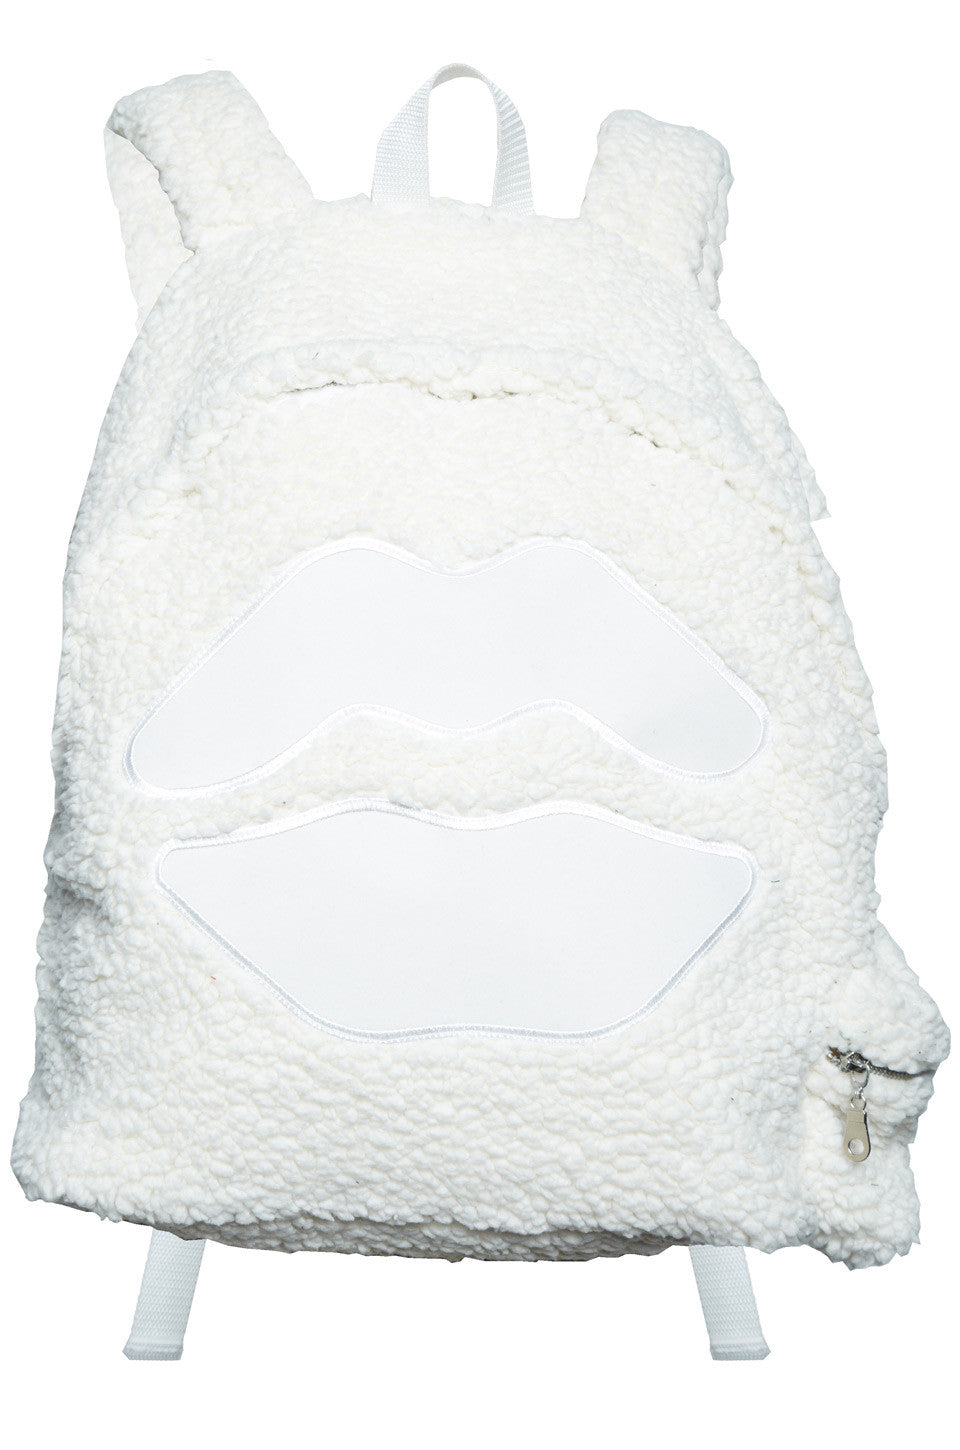 Quincy White Mouth Patch Sherpa Backpack - Lauren Moshi - 2